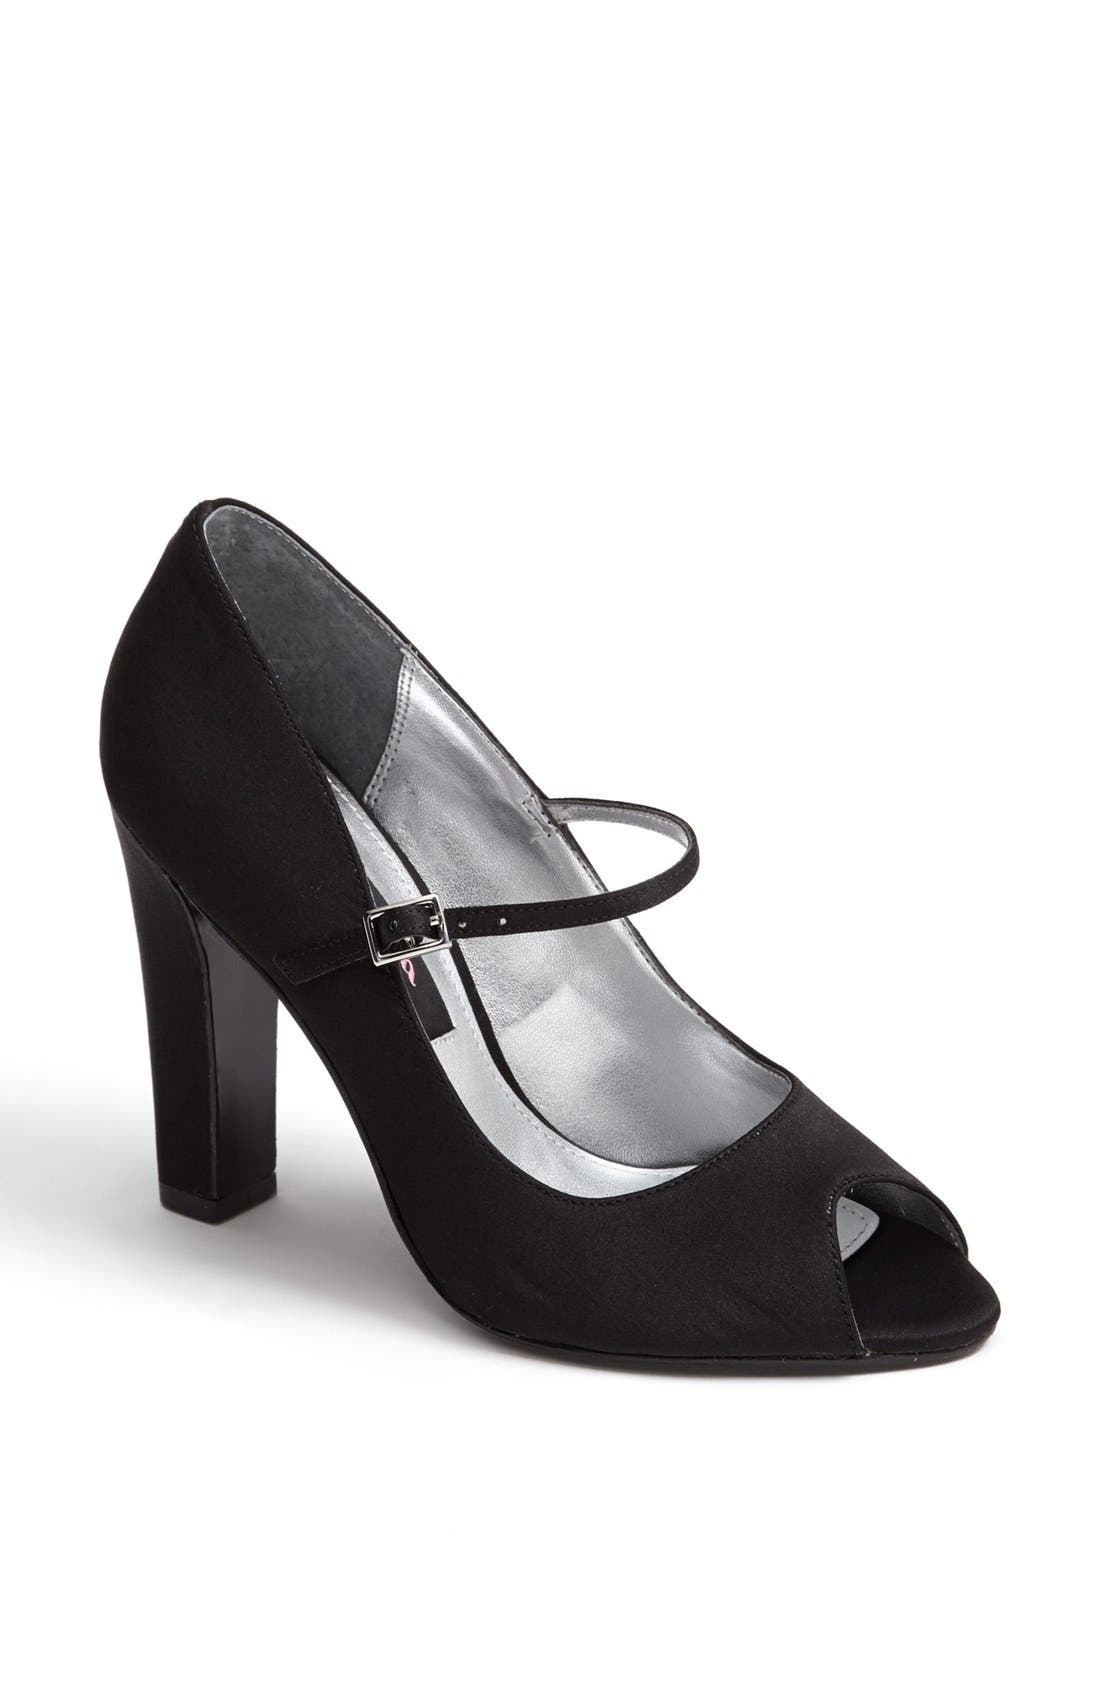 Alternate Image 1 Selected - Nina 'Magnolia' Pump (Online Only)